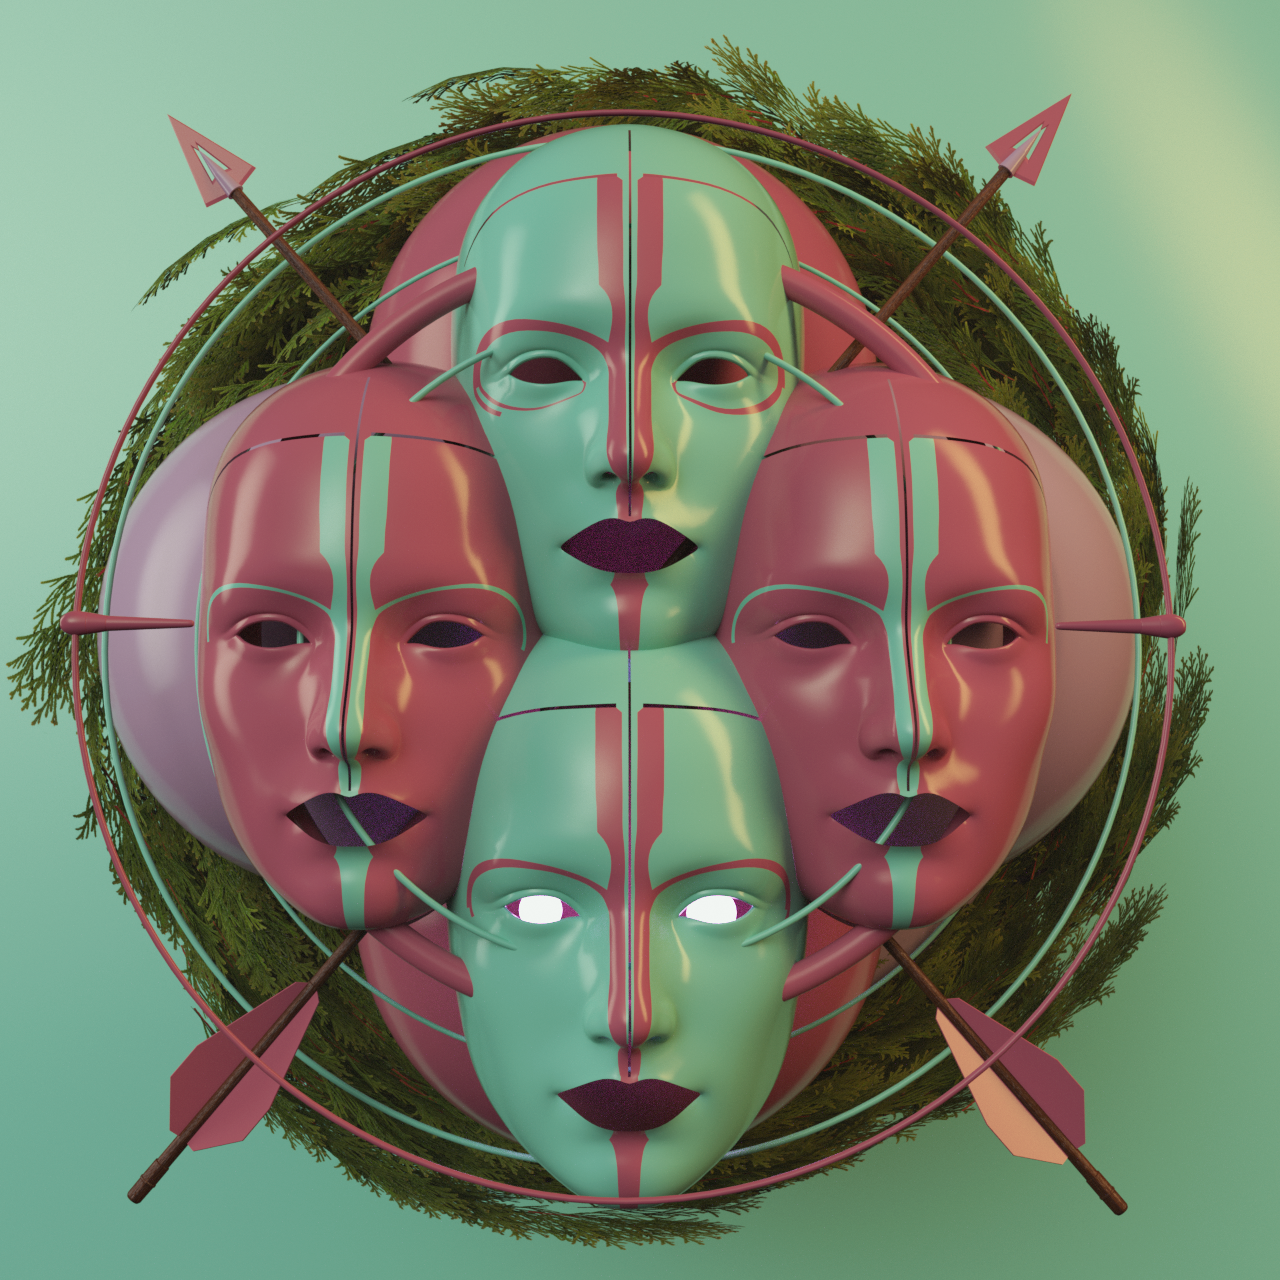 HEADS_ALL_RENDER (0-00-01-15).png